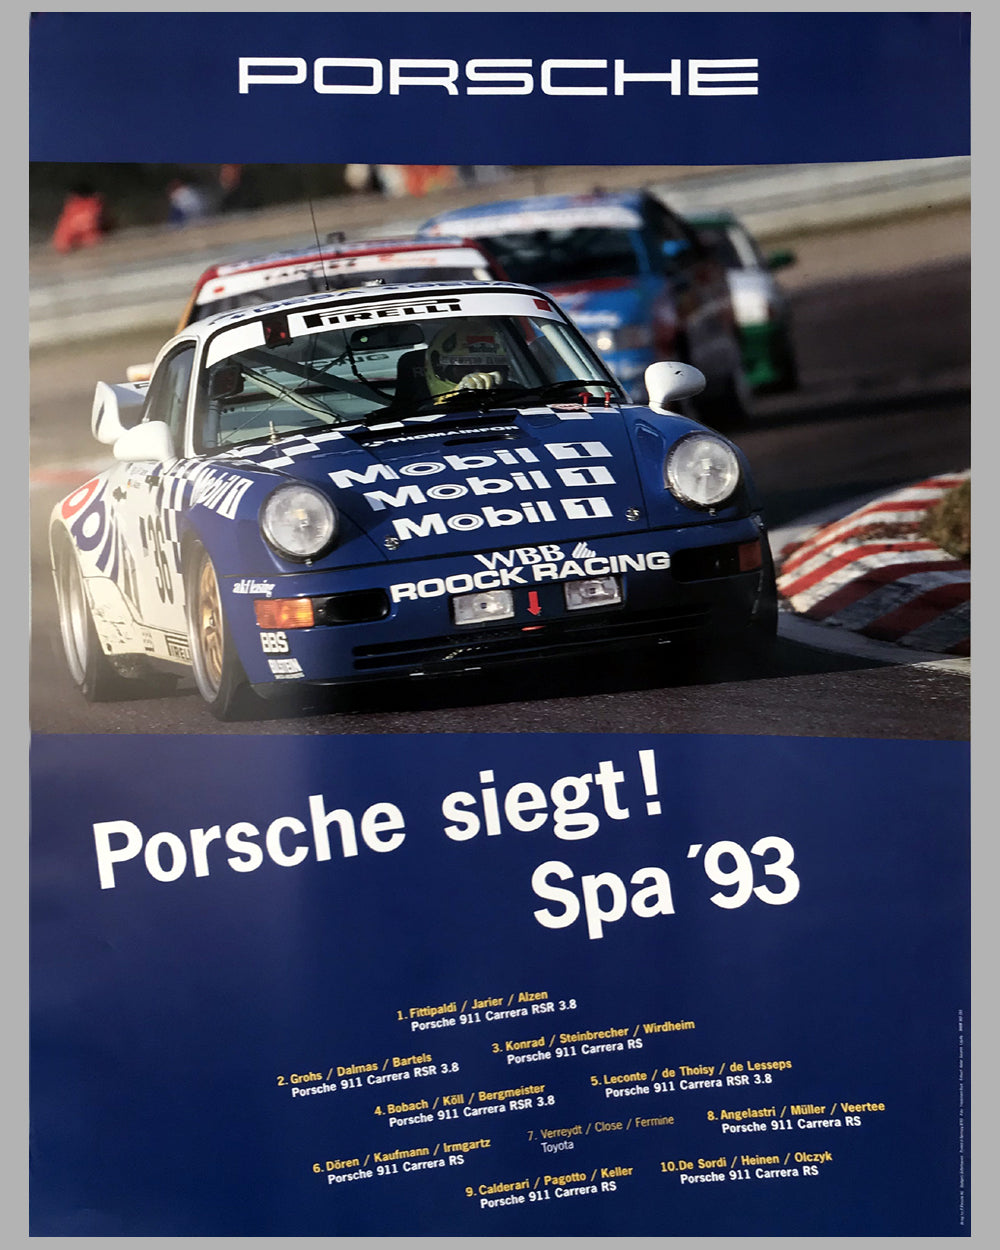 1993 Porsche Wins! at 24 Hours of Spa Victory Poster